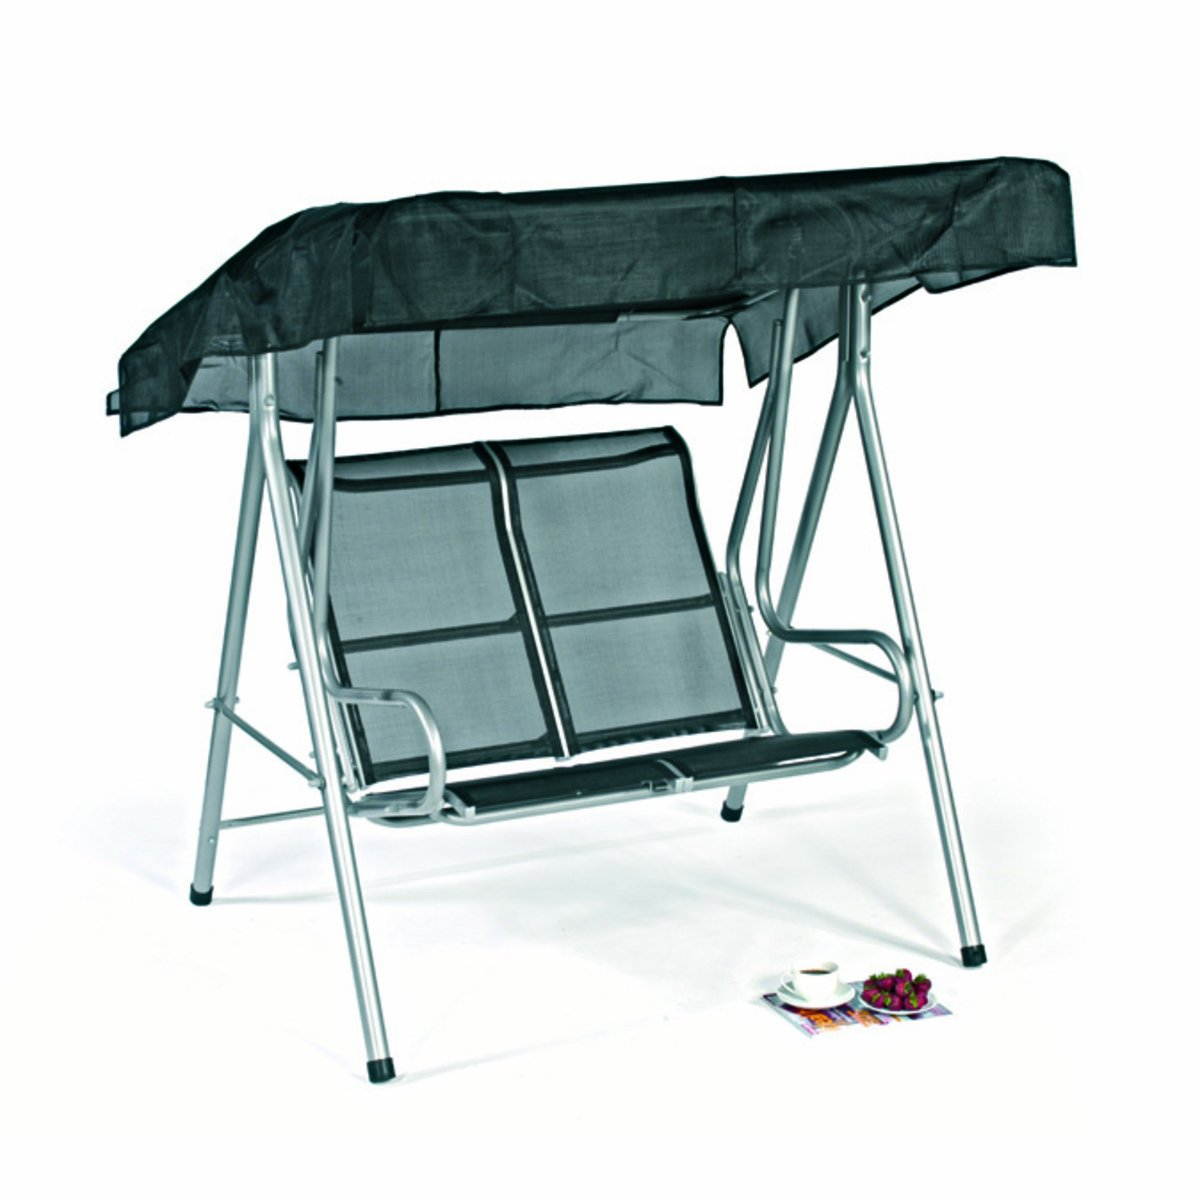 Bosmere Outdoor 2-Seat Hammock Cover, Green by Bosmere Products (Image #2)